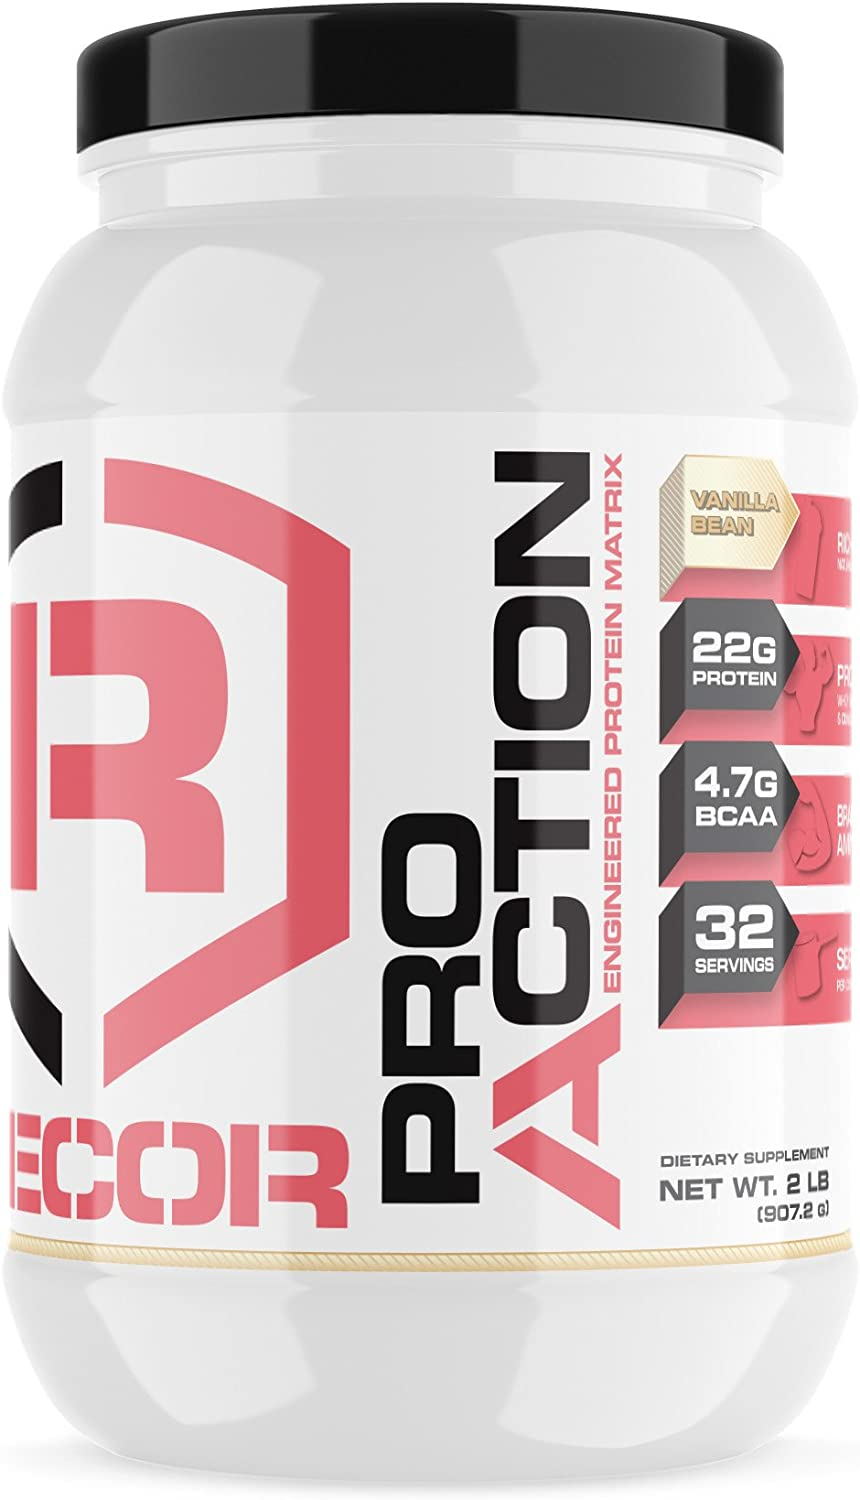 Reaction Nutrition Recor Pro Action Whey Protein, Vanilla Bean, 2 Pound